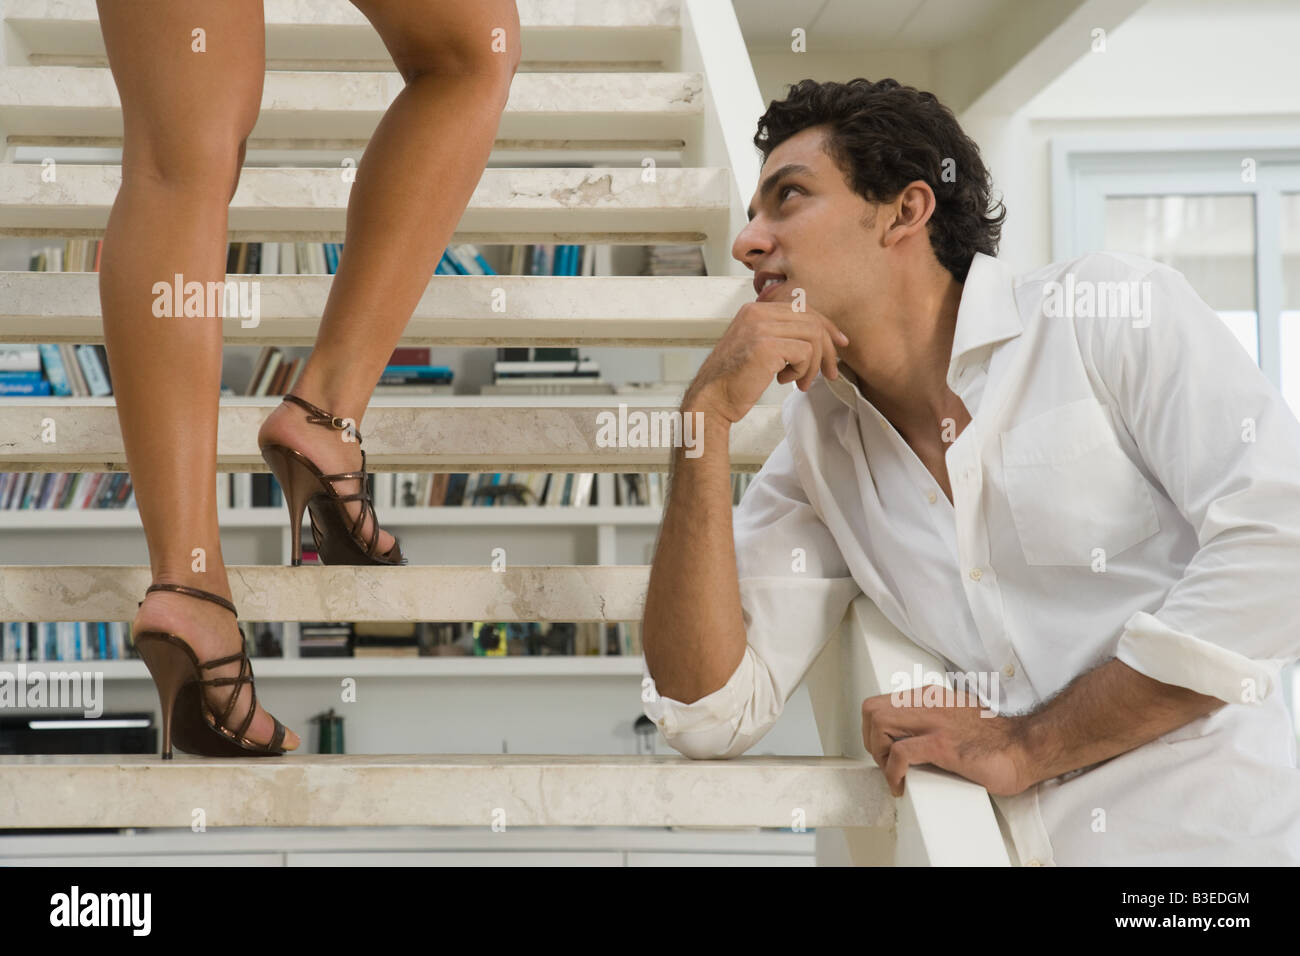 Man looking at a womans legs - Stock Image